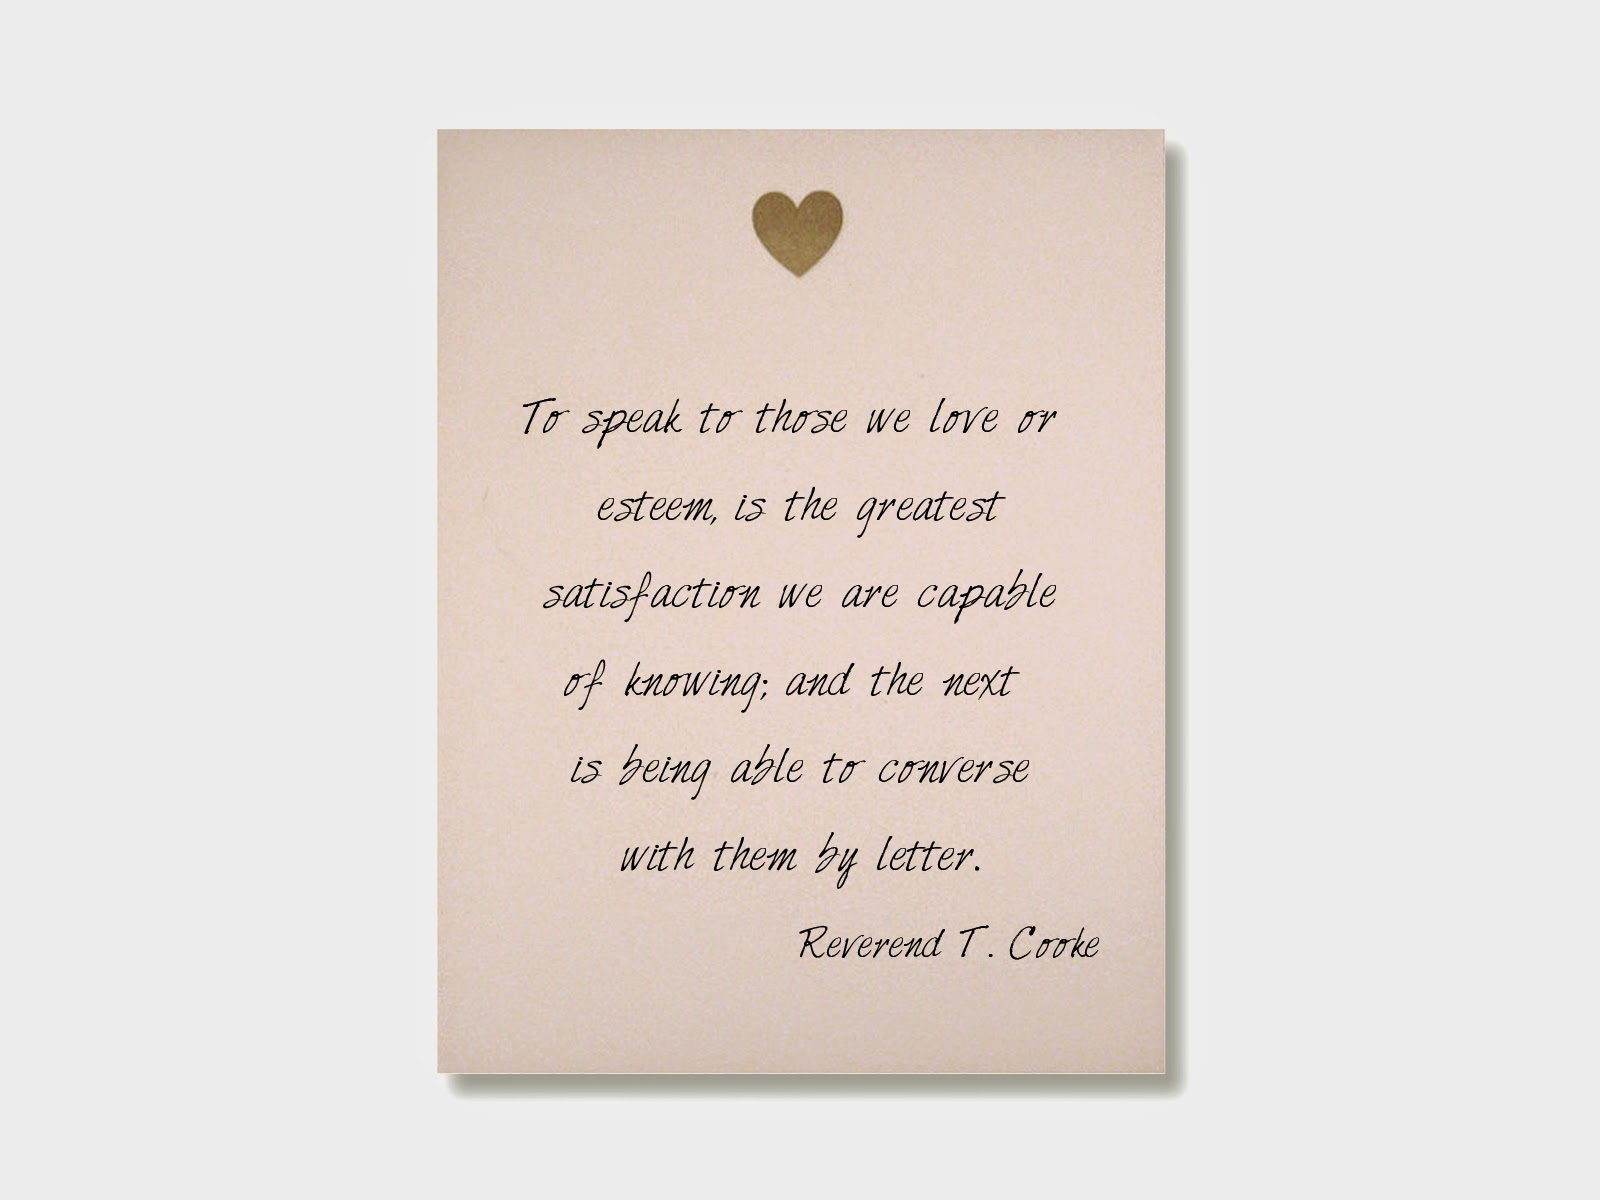 To speak to those we love or esteem, is the greatest satisfaction we are capable of knowing; and the next is being able to converse with them by letter. - Reverend T. Cooke